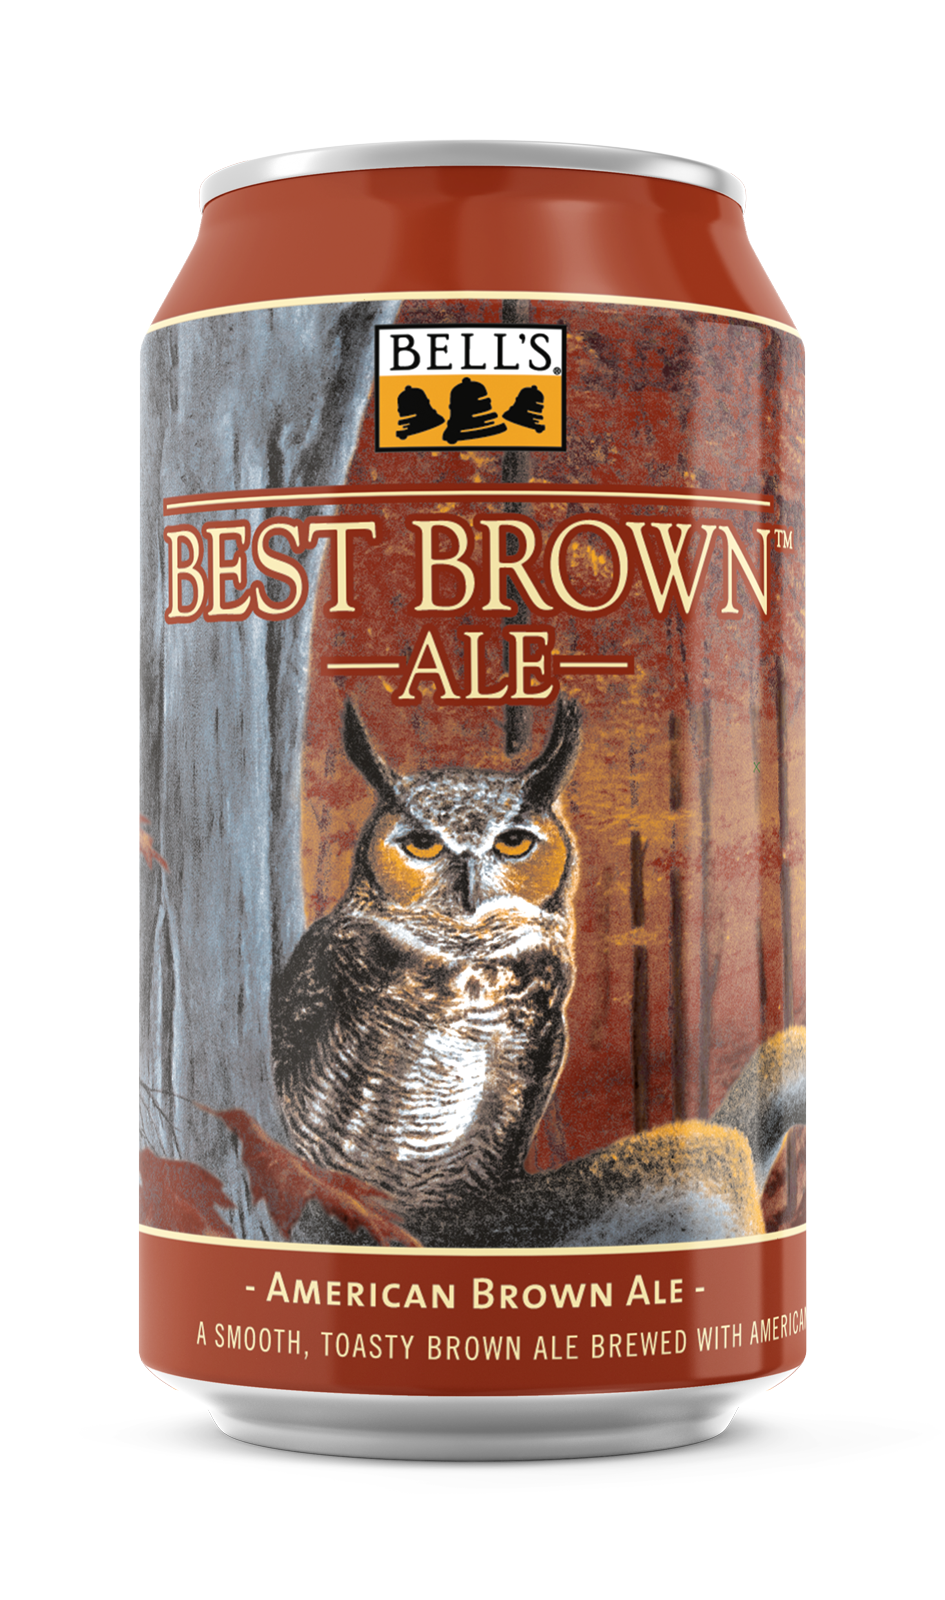 Bell's Can Image Best Brown Ale